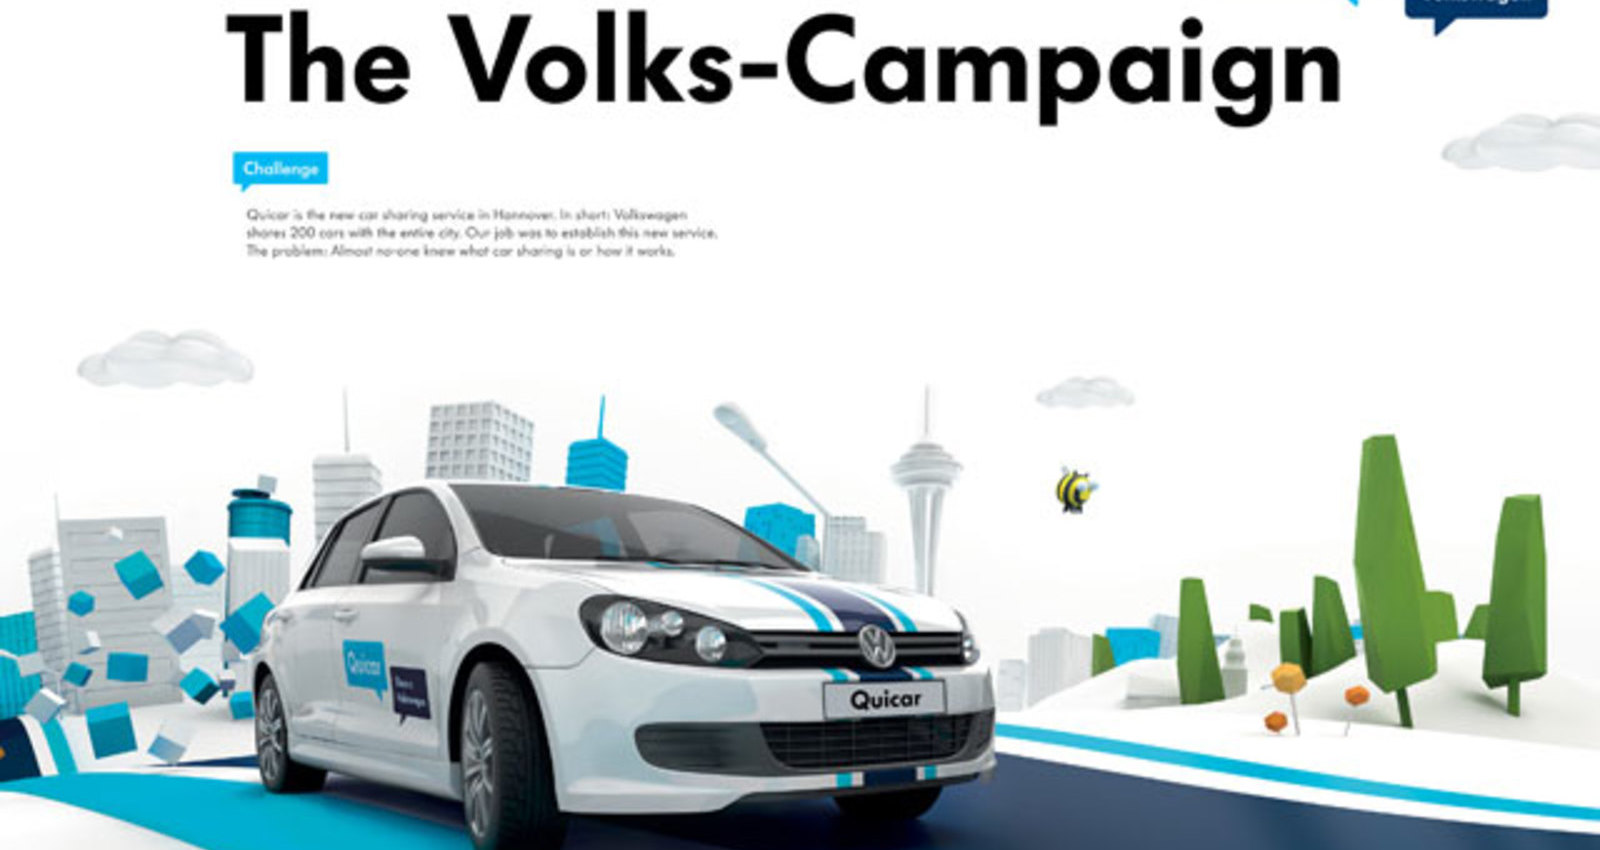 Quicar, the Volks Campaign